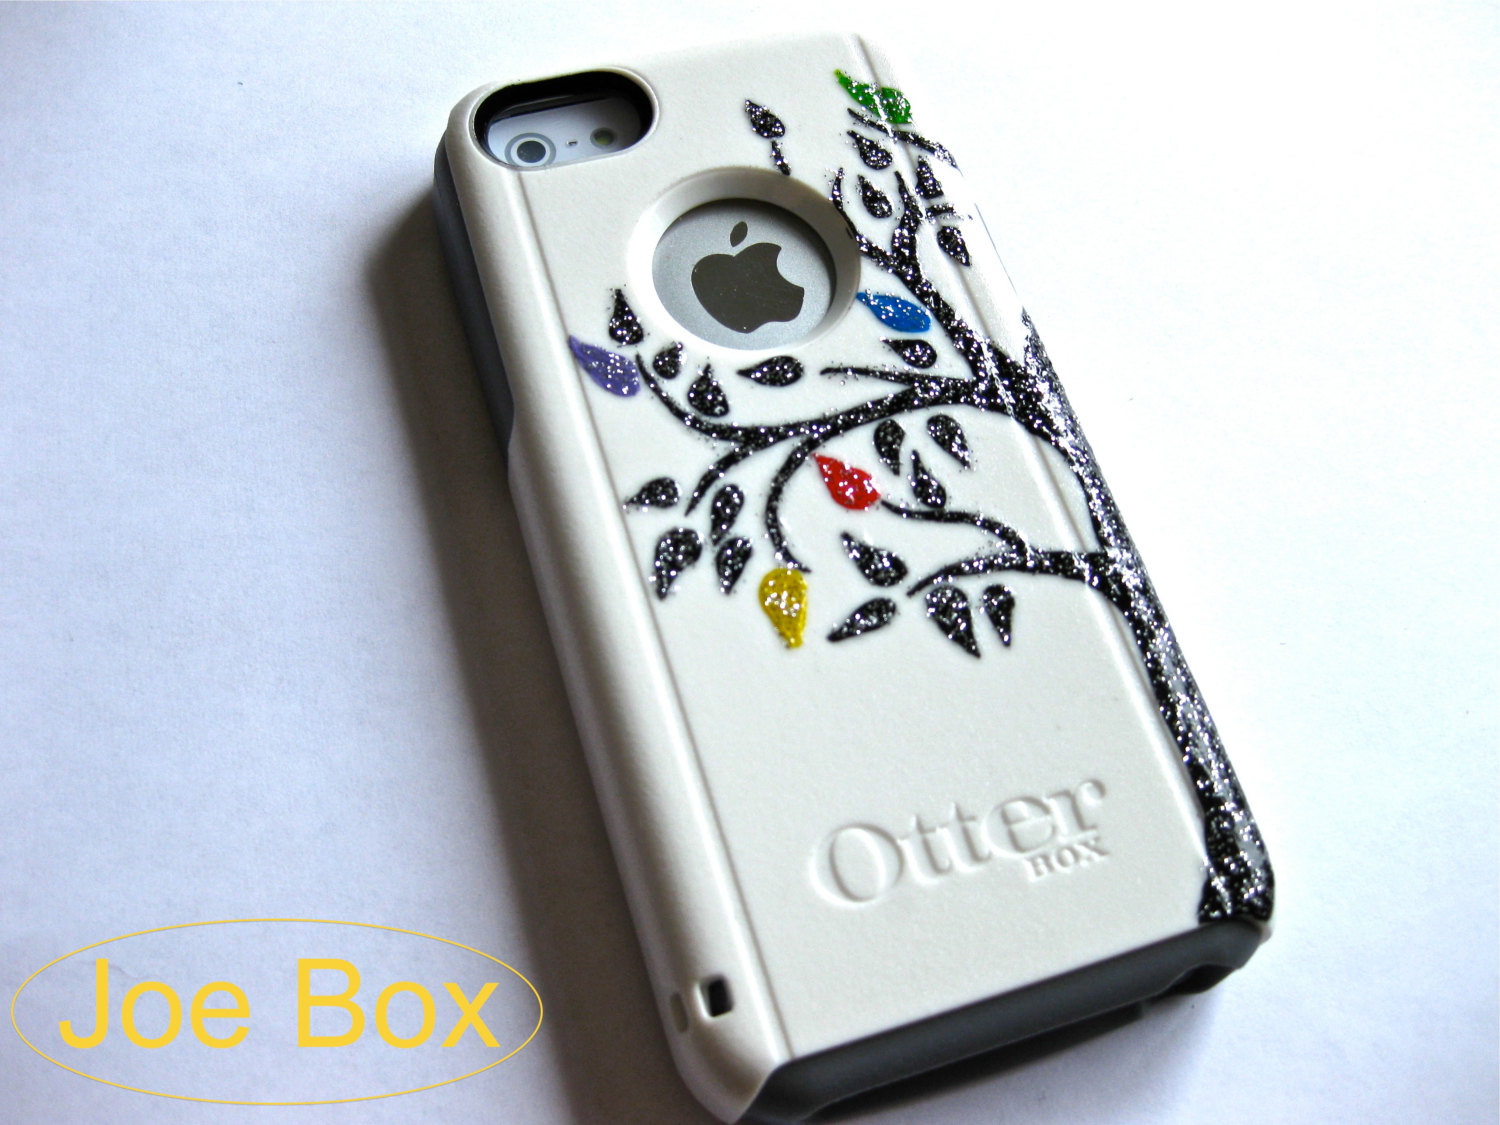 OTTERBOX iPhone 5C case, case cover iPhone 5C otterbox ,iPhone 5C otterboxglitter case,otterboxiPhone 5C,glitter otterbox,tree otterbox case